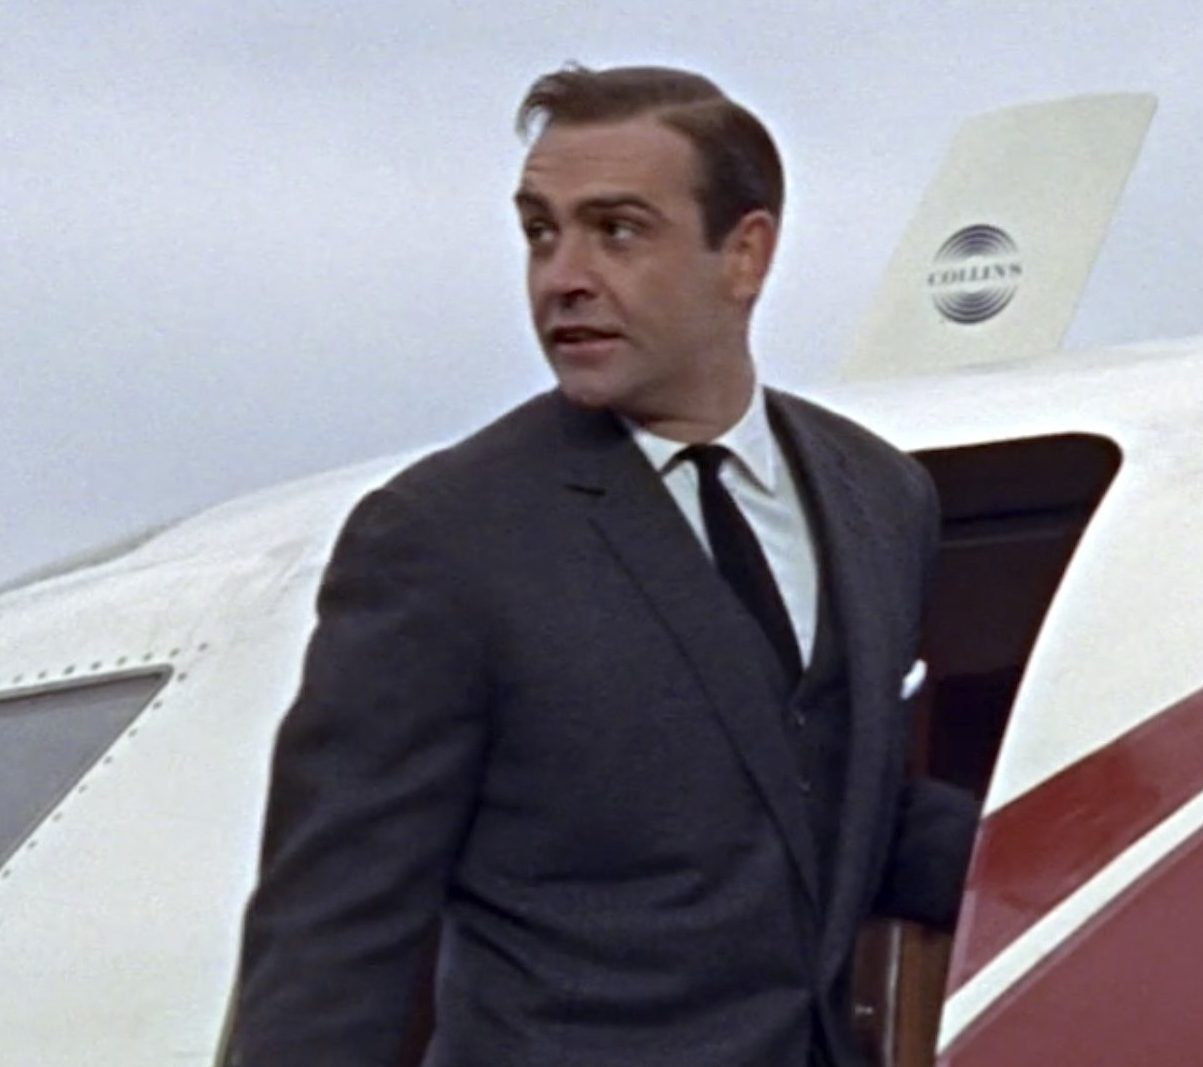 gf12 main1 e1615383127740 30 Things You Probably Didn't Know About The James Bond Films